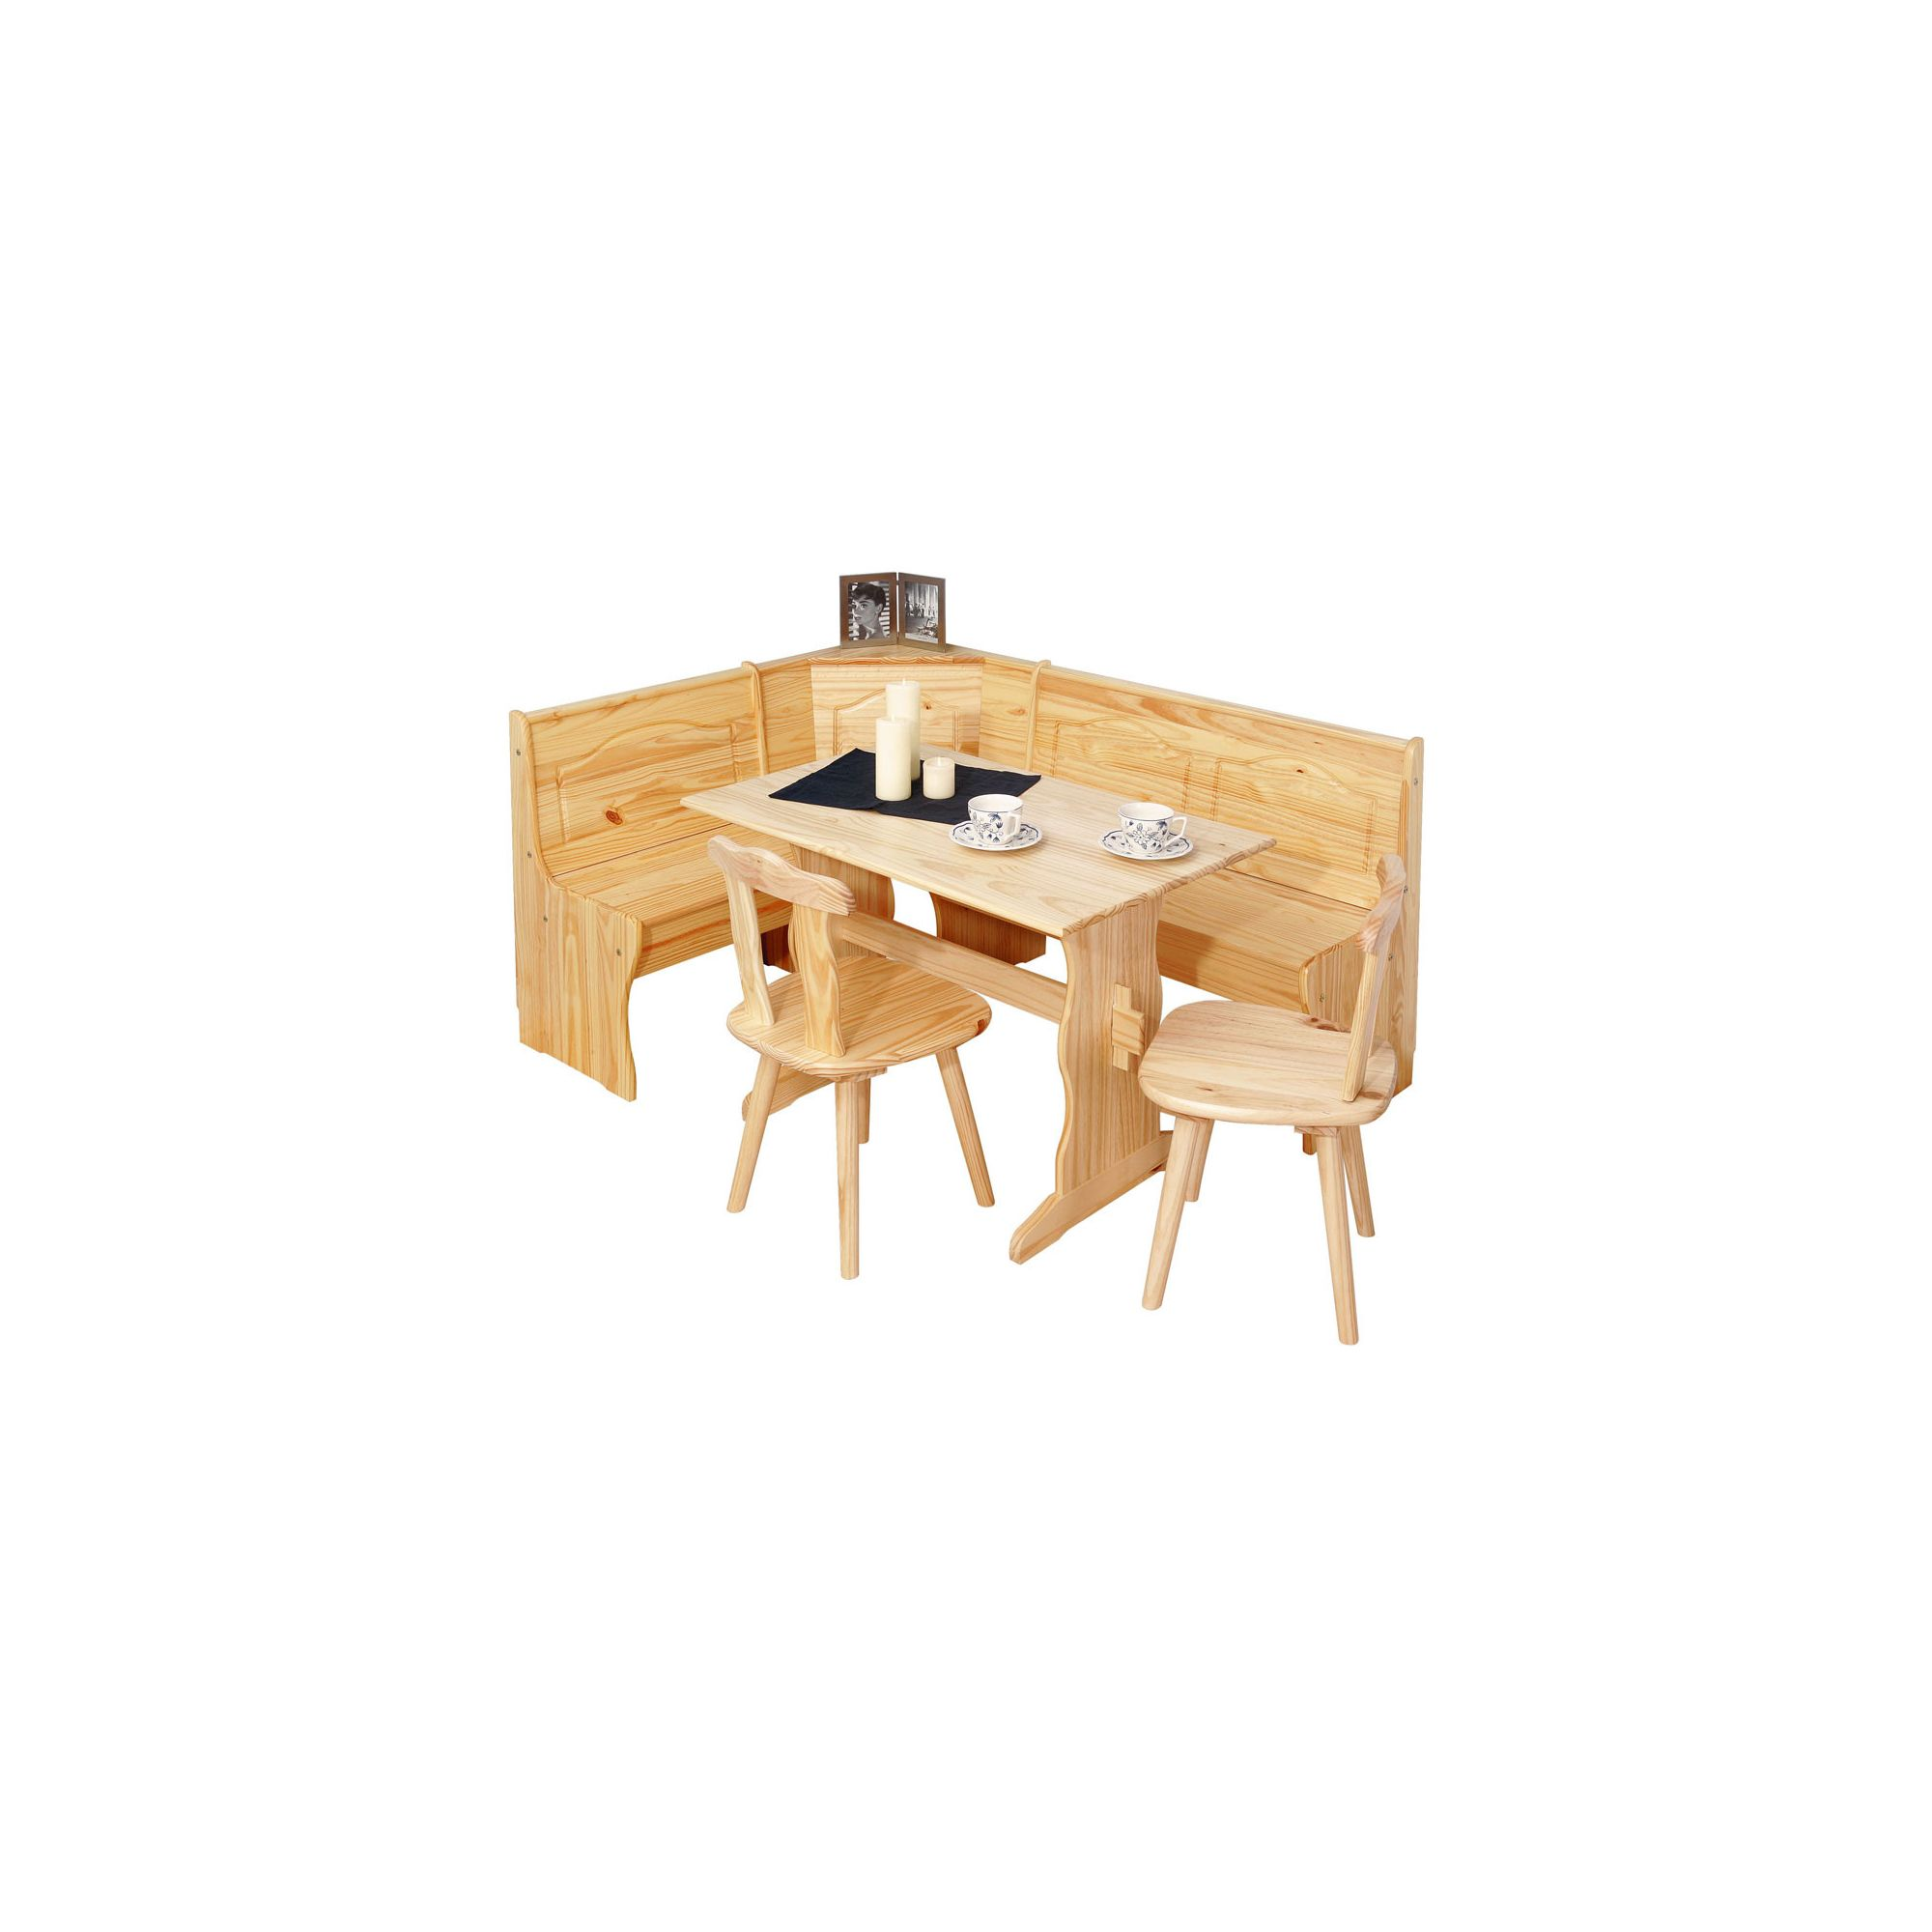 Interlink Tirol Corner Kitchen Bench with Table and Two Chairs in Natural at Tesco Direct